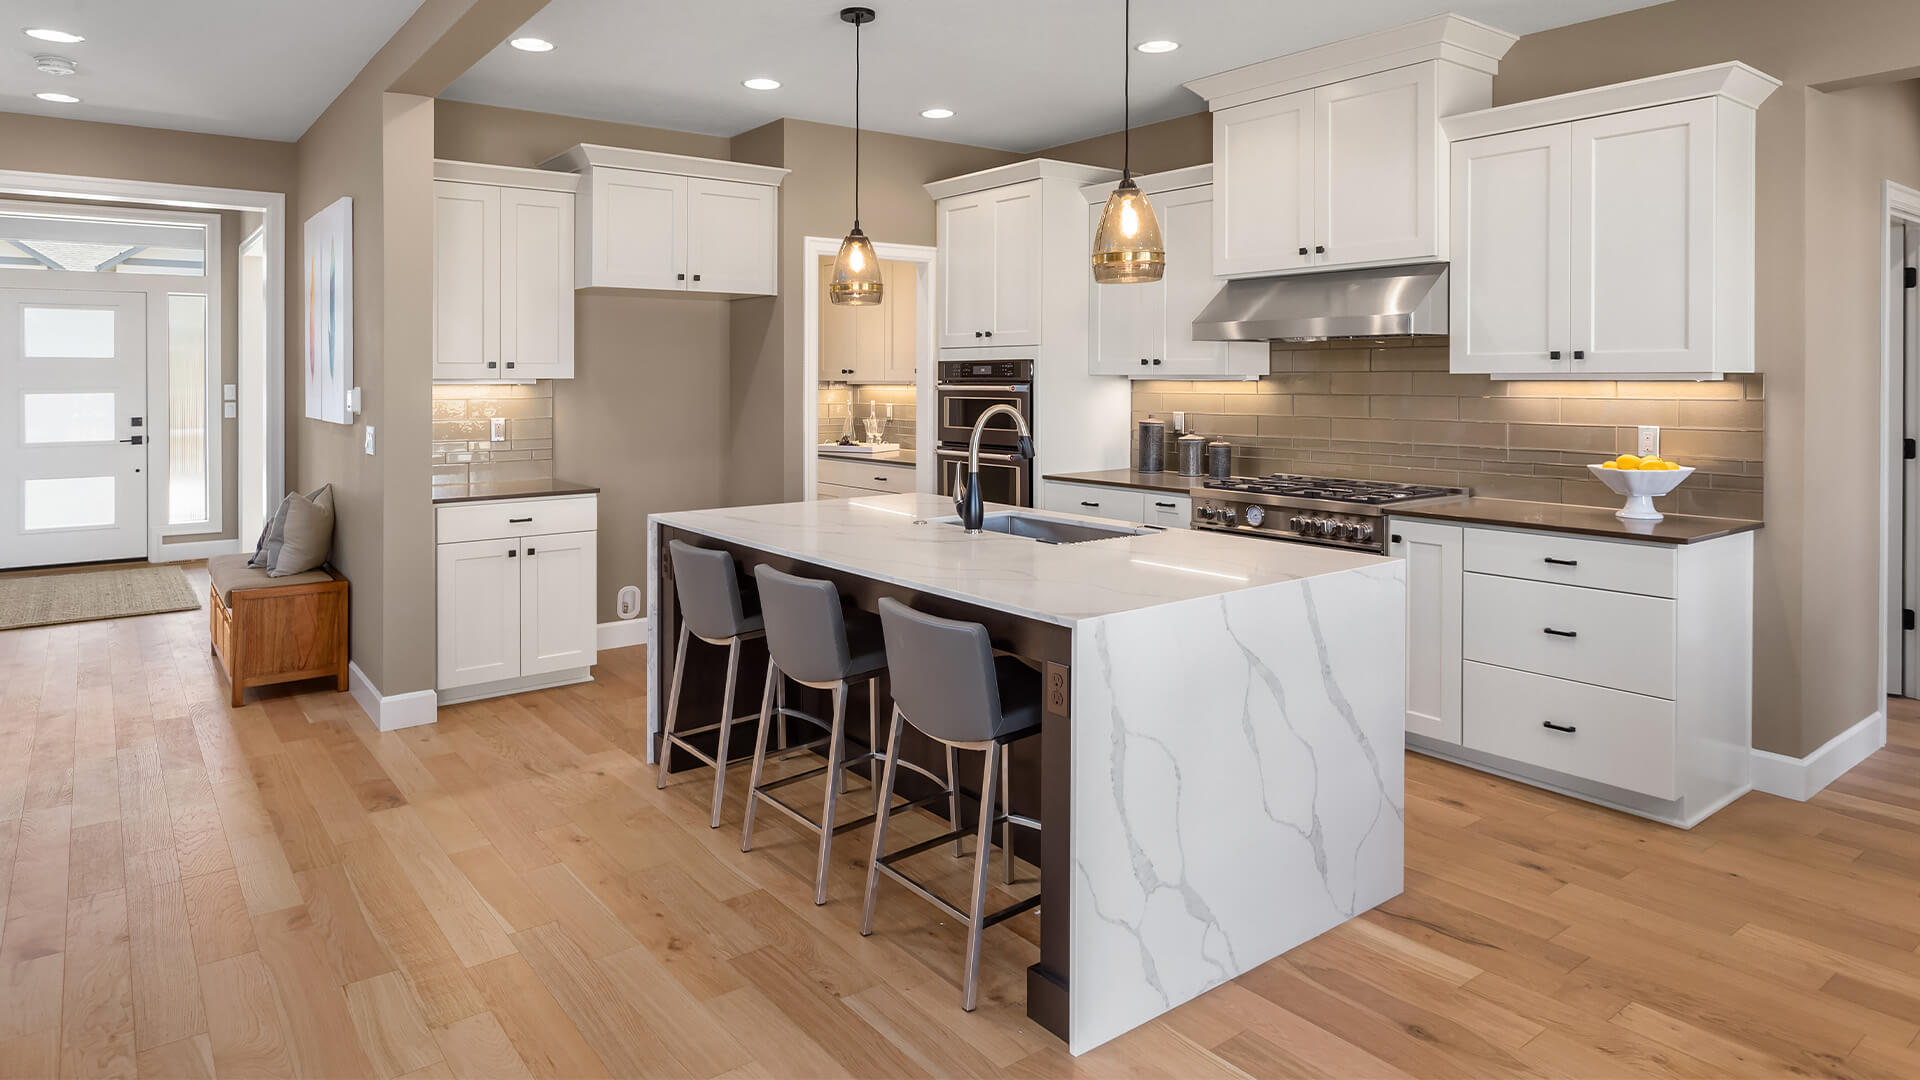 Modern kitchen with wooden floors and marble counters